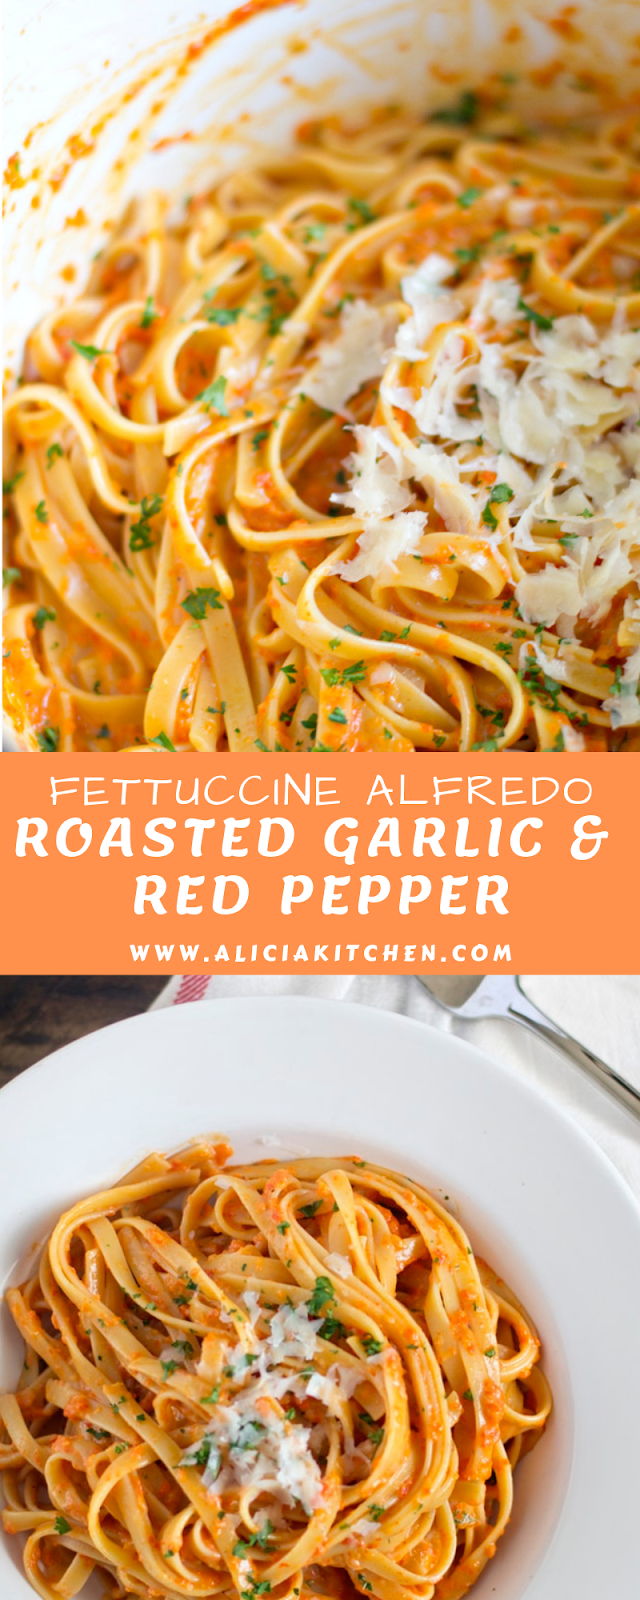 ROASTED GARLIC AND RED PEPPER FETTUCCINE ALFREDO